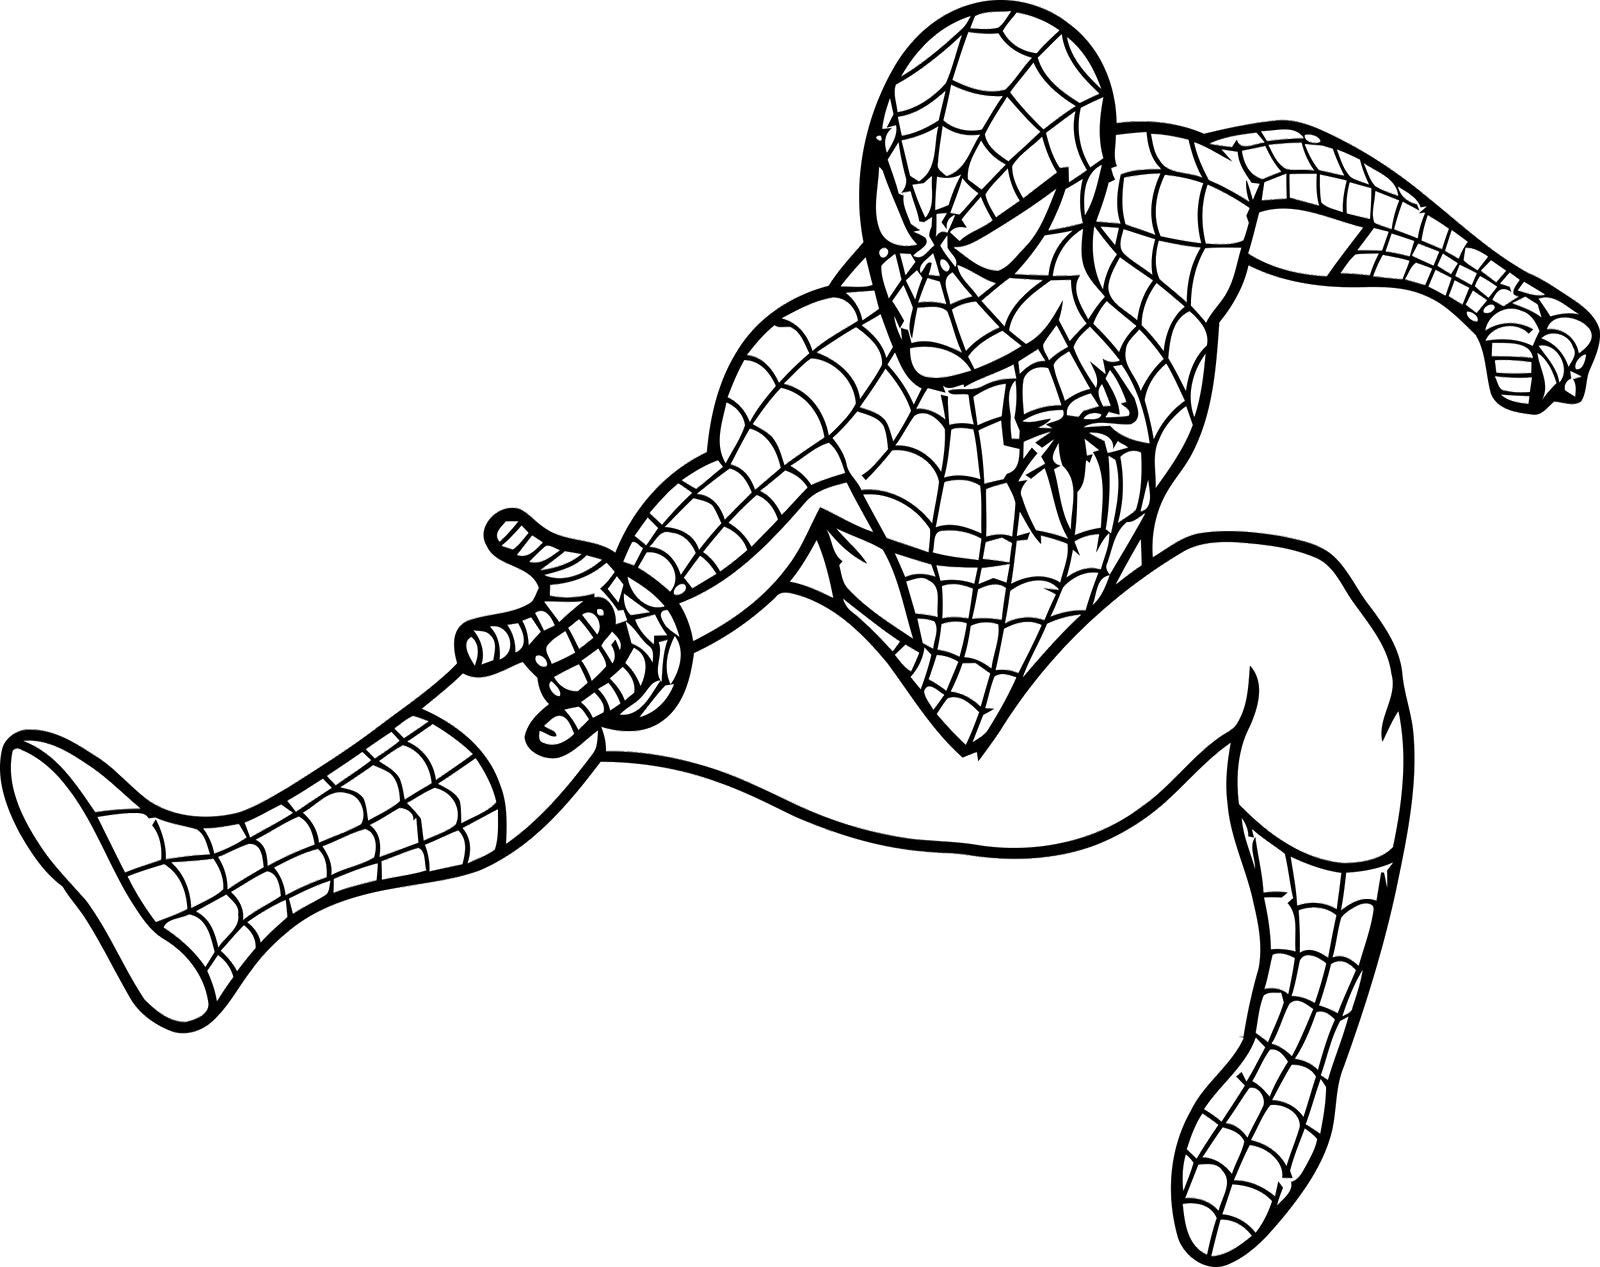 Free Spiderman Coloring Pages Turtle Coloring Pages Lego Coloring Pages Superhero Coloring Pages